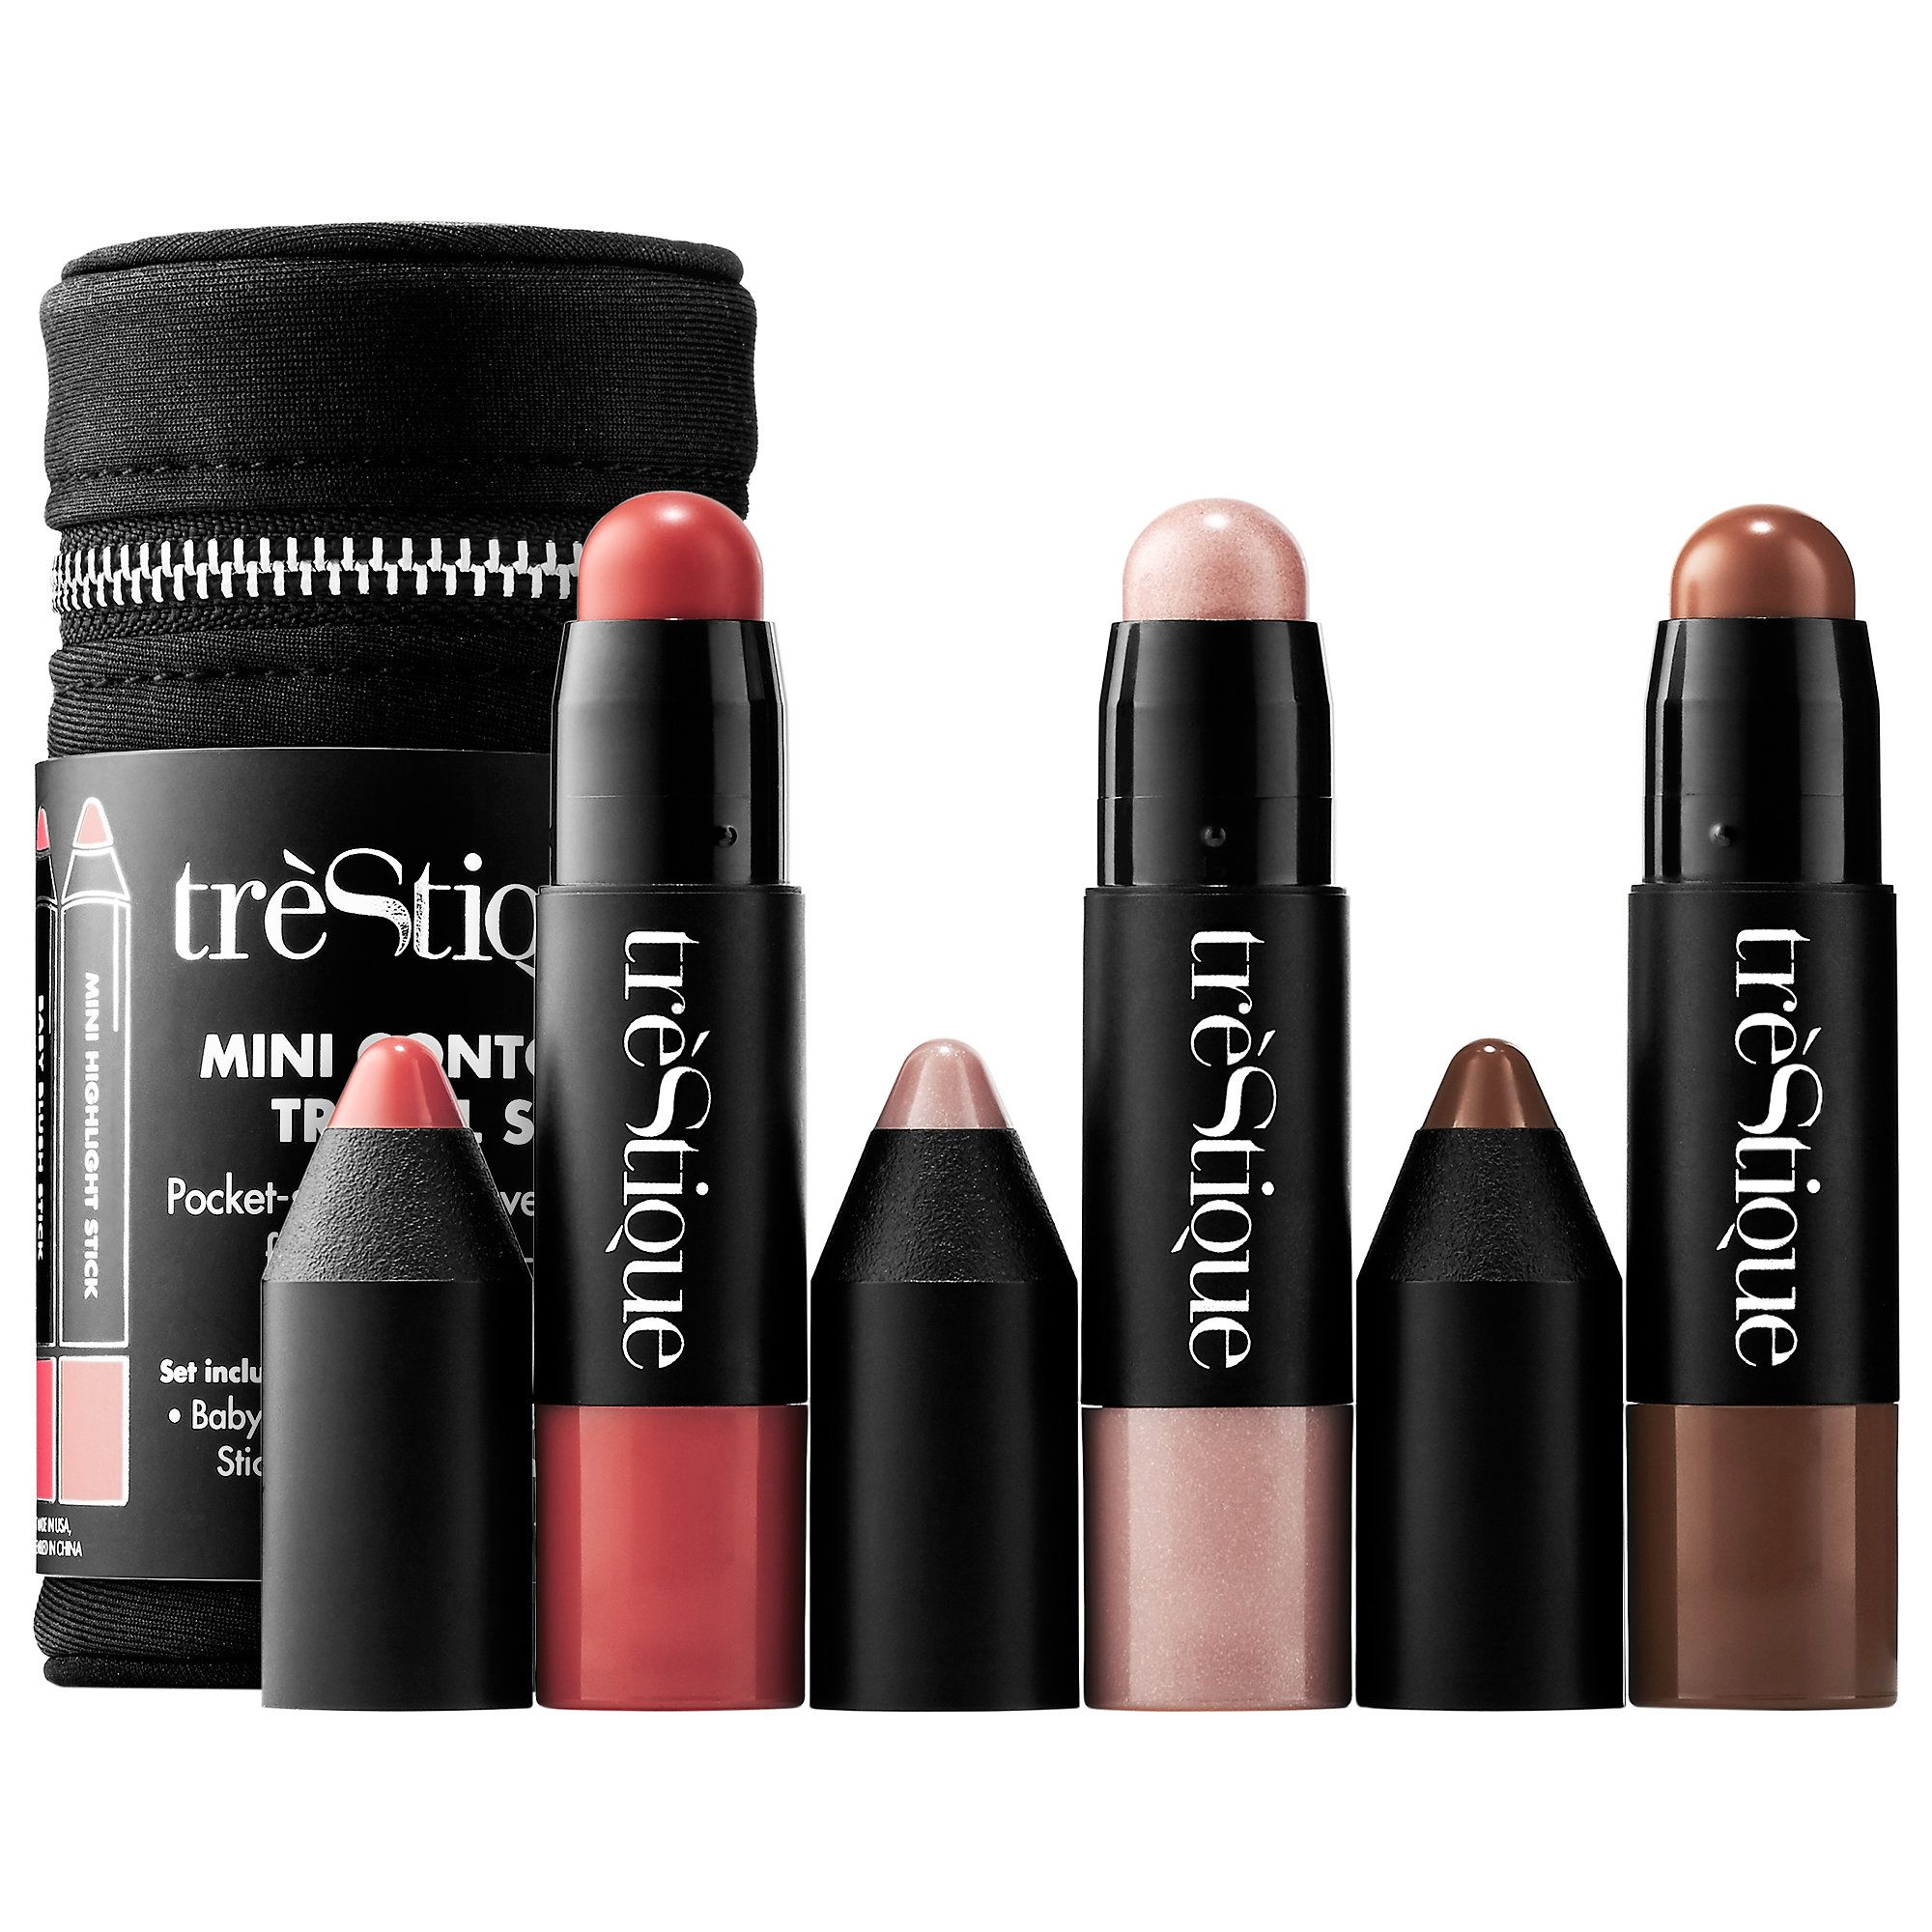 Shop trèStiQue's Mini Contour Travel Set at Sephora. It